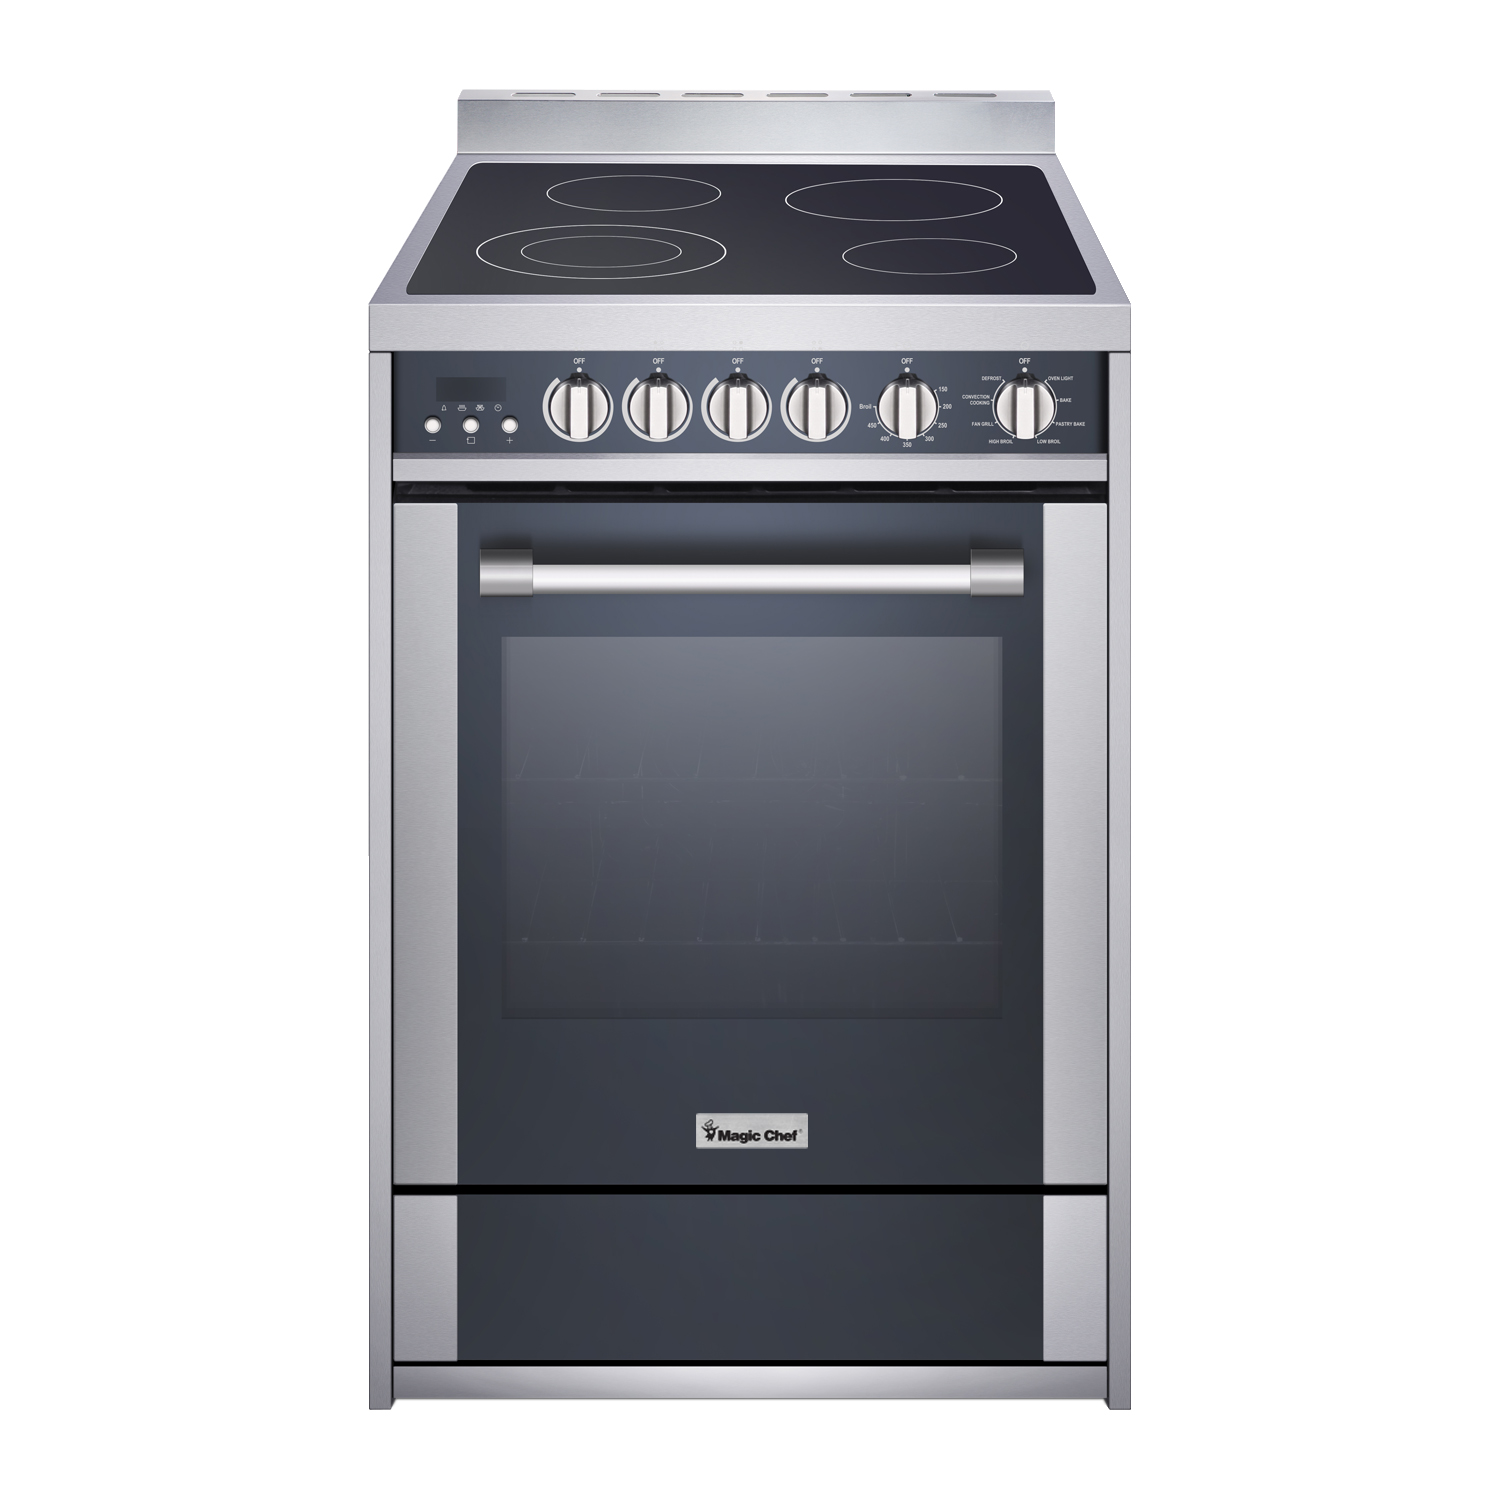 "Magic Chef 24"" Freestanding Electric Range in Stainless Steel/Black"